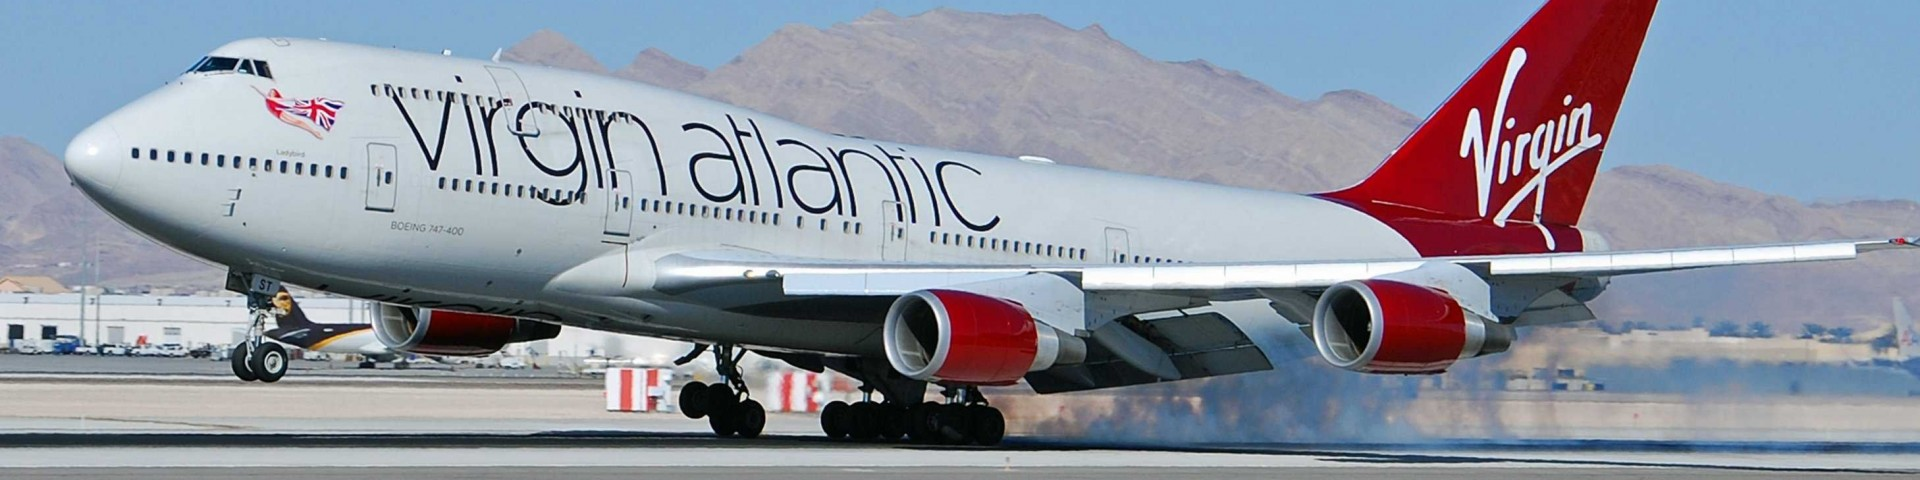 virgin-atlantic-airways-boeing-747-400-g-vast-2